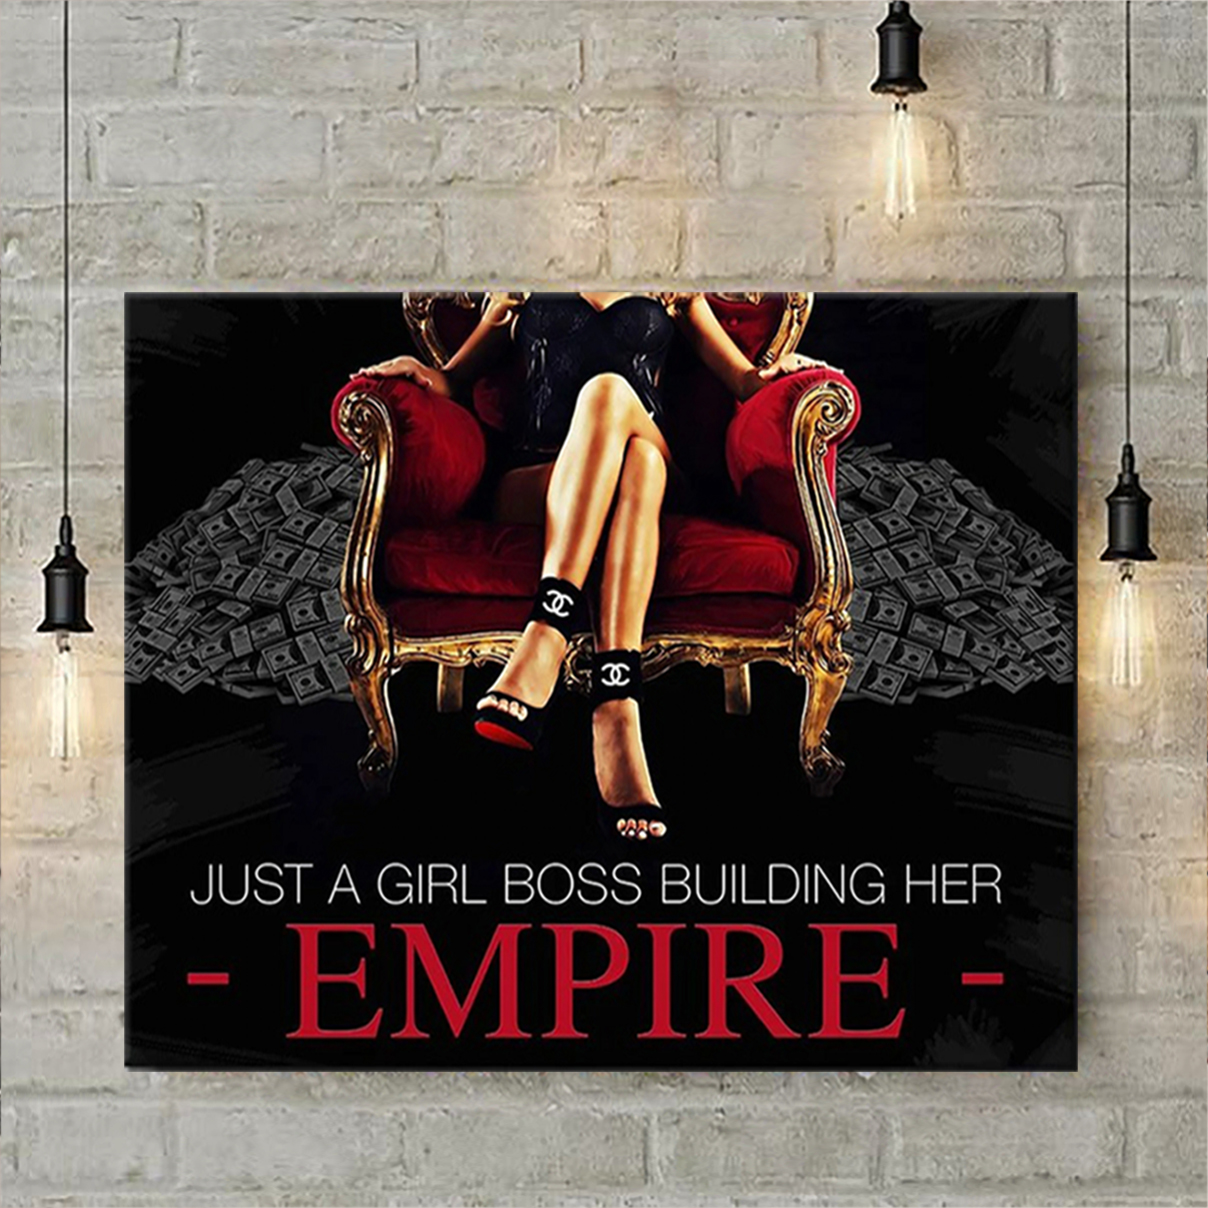 Just a girl boss building her empire poster A1